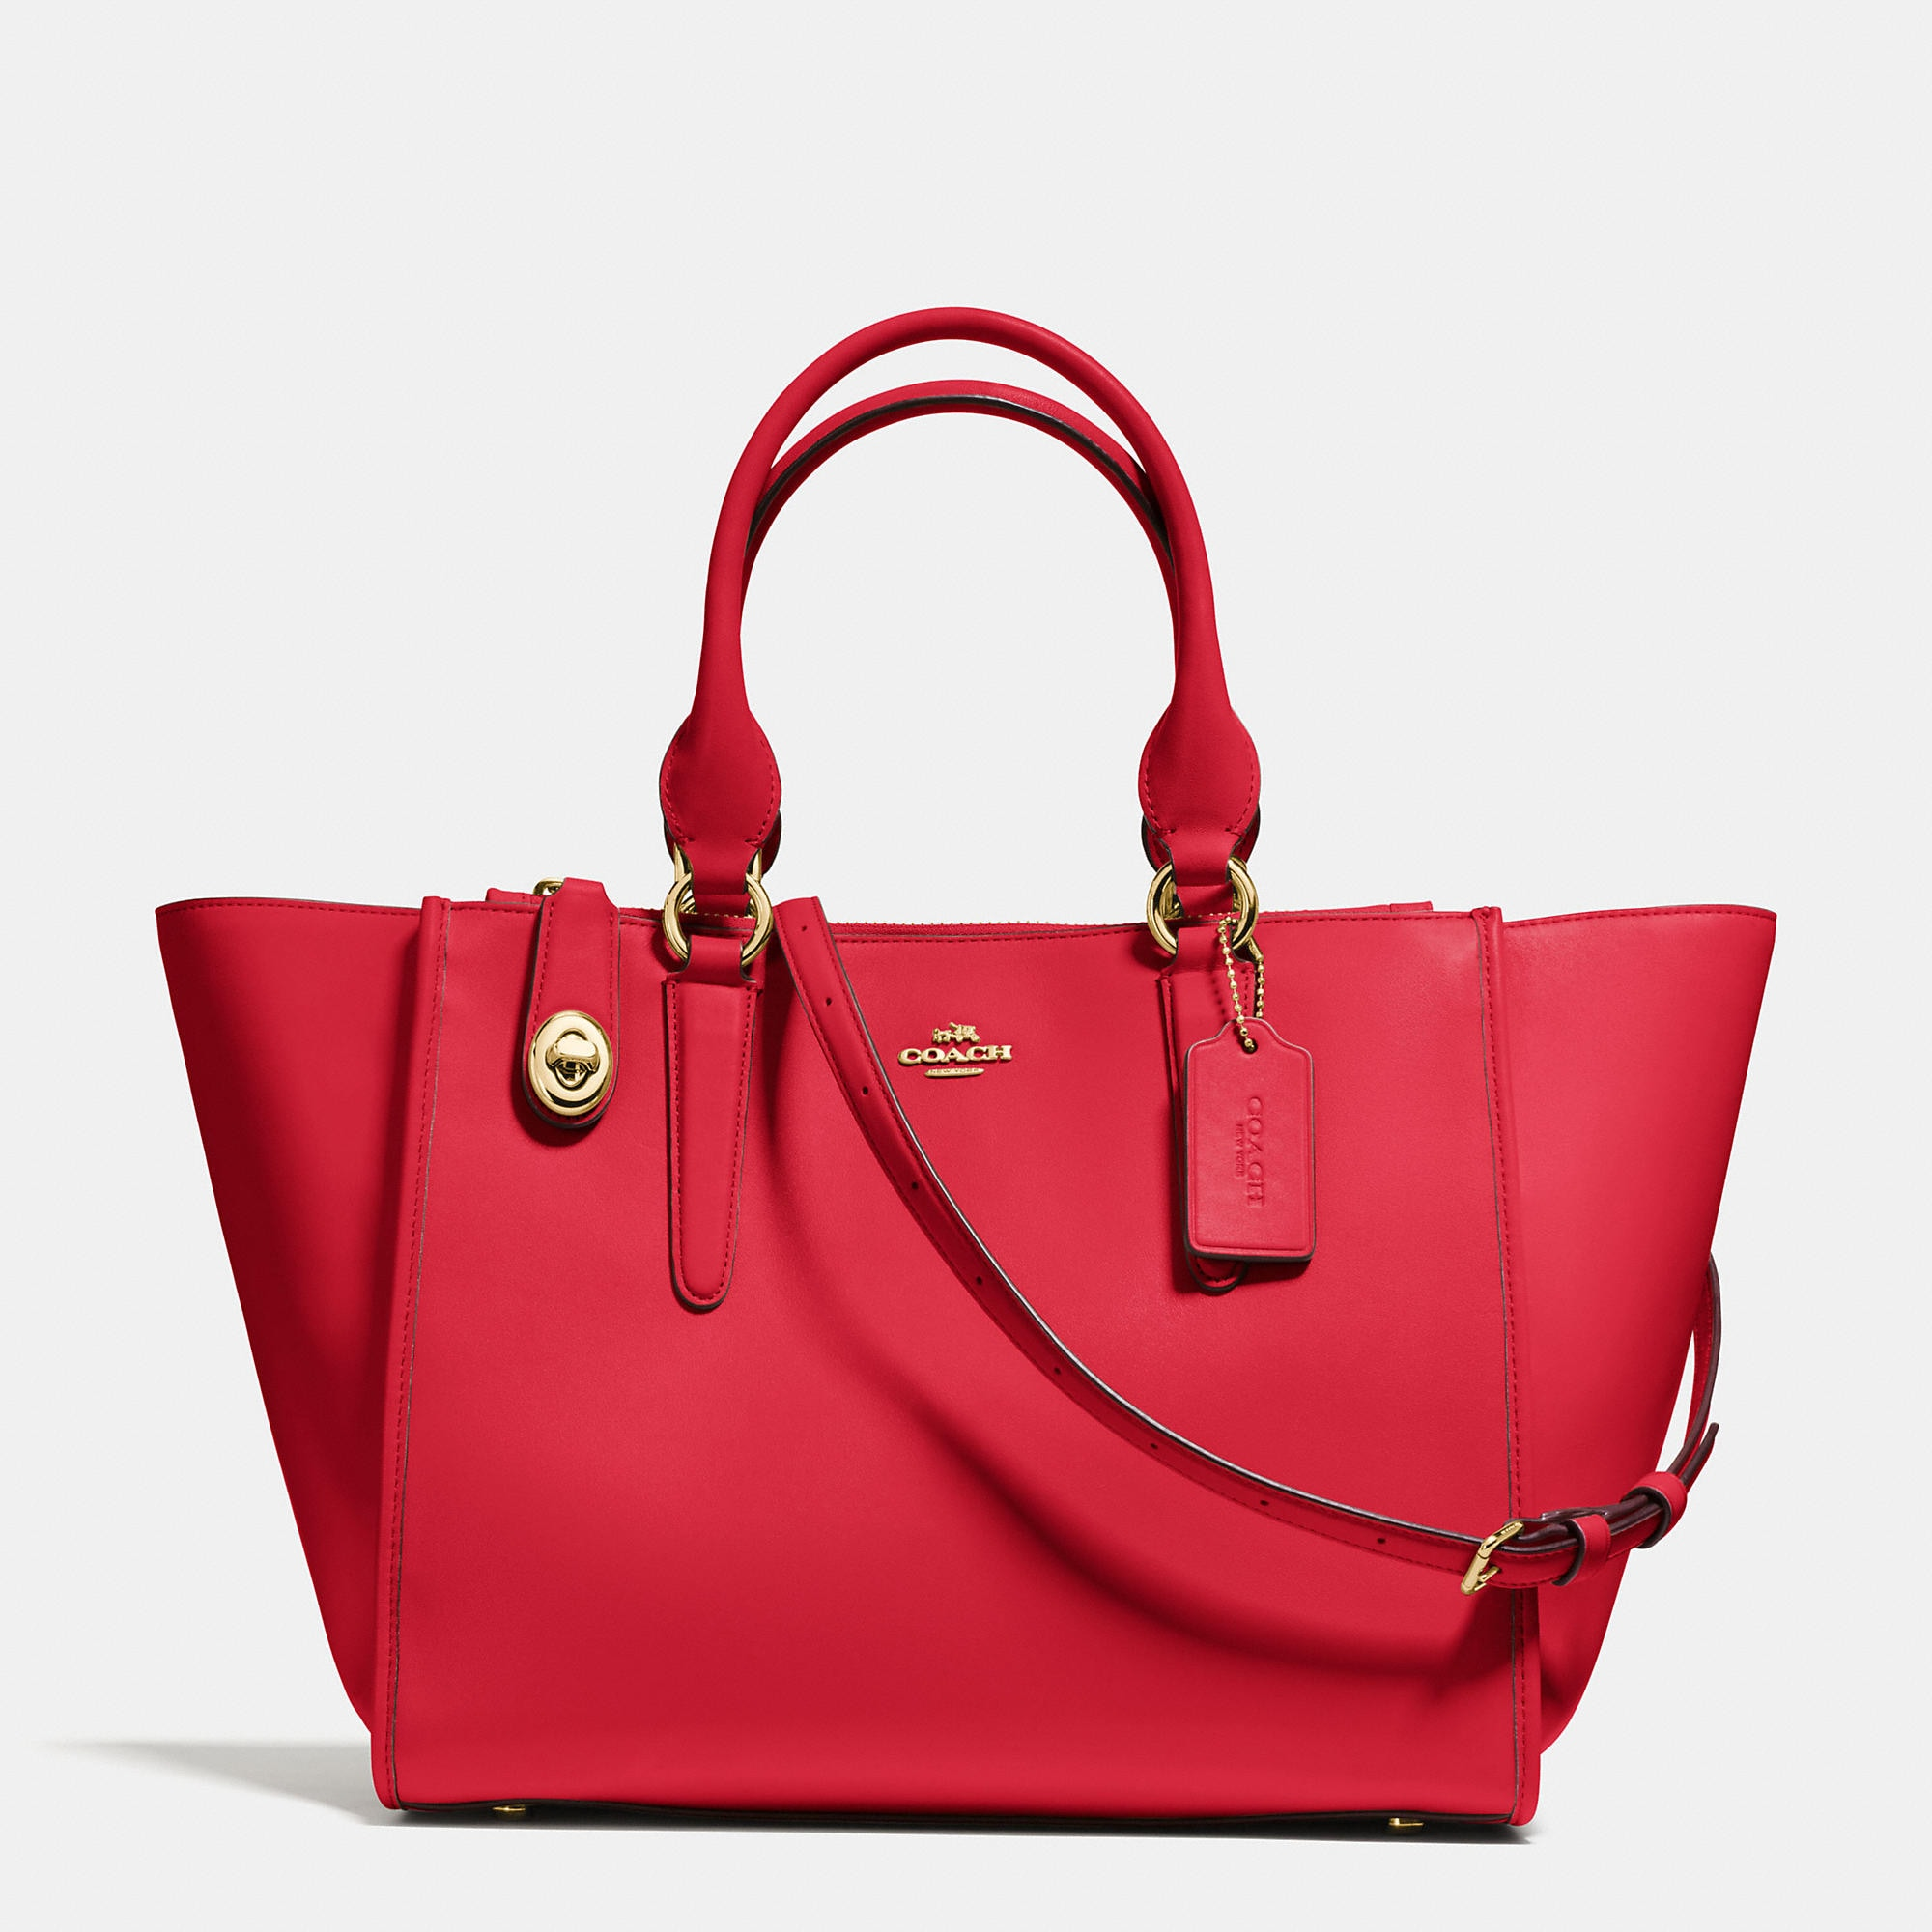 Coach Crosby Carryall in Smooth Leather